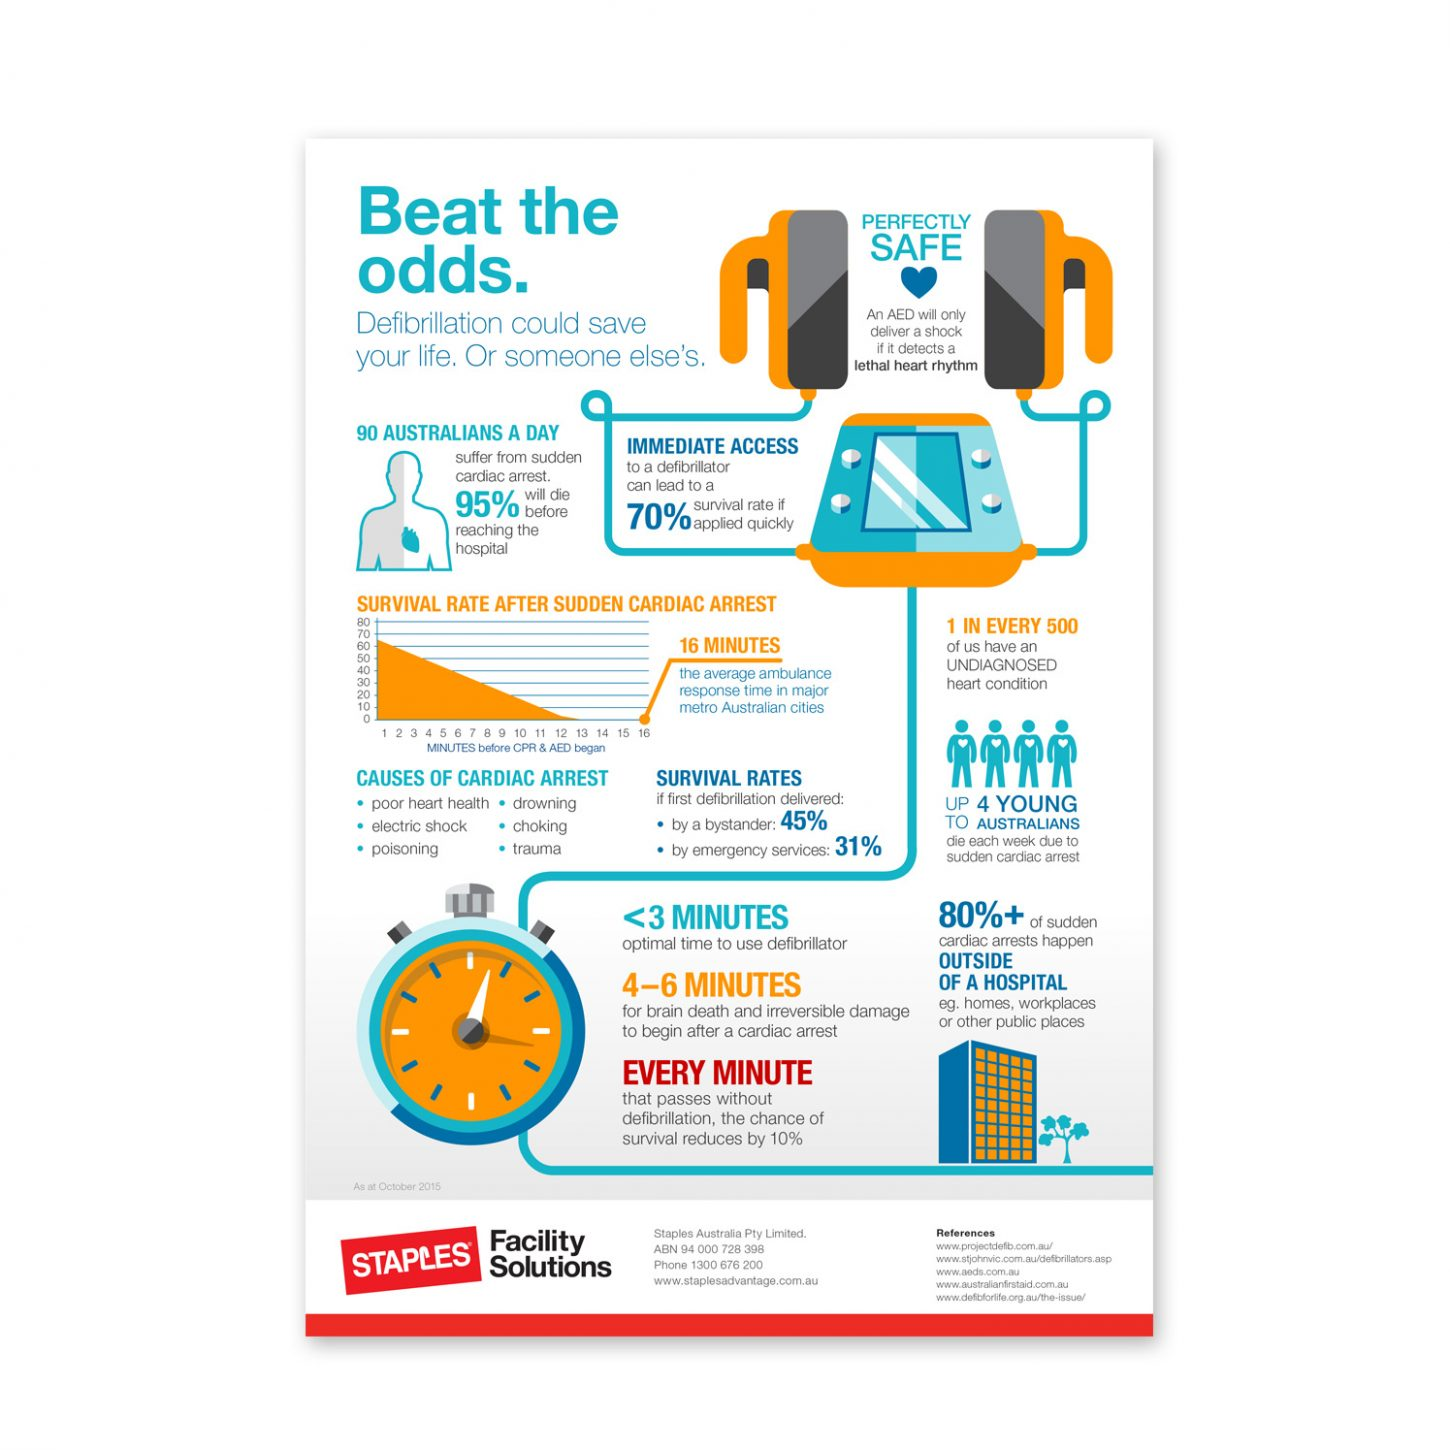 Infographic_Safety Solutions